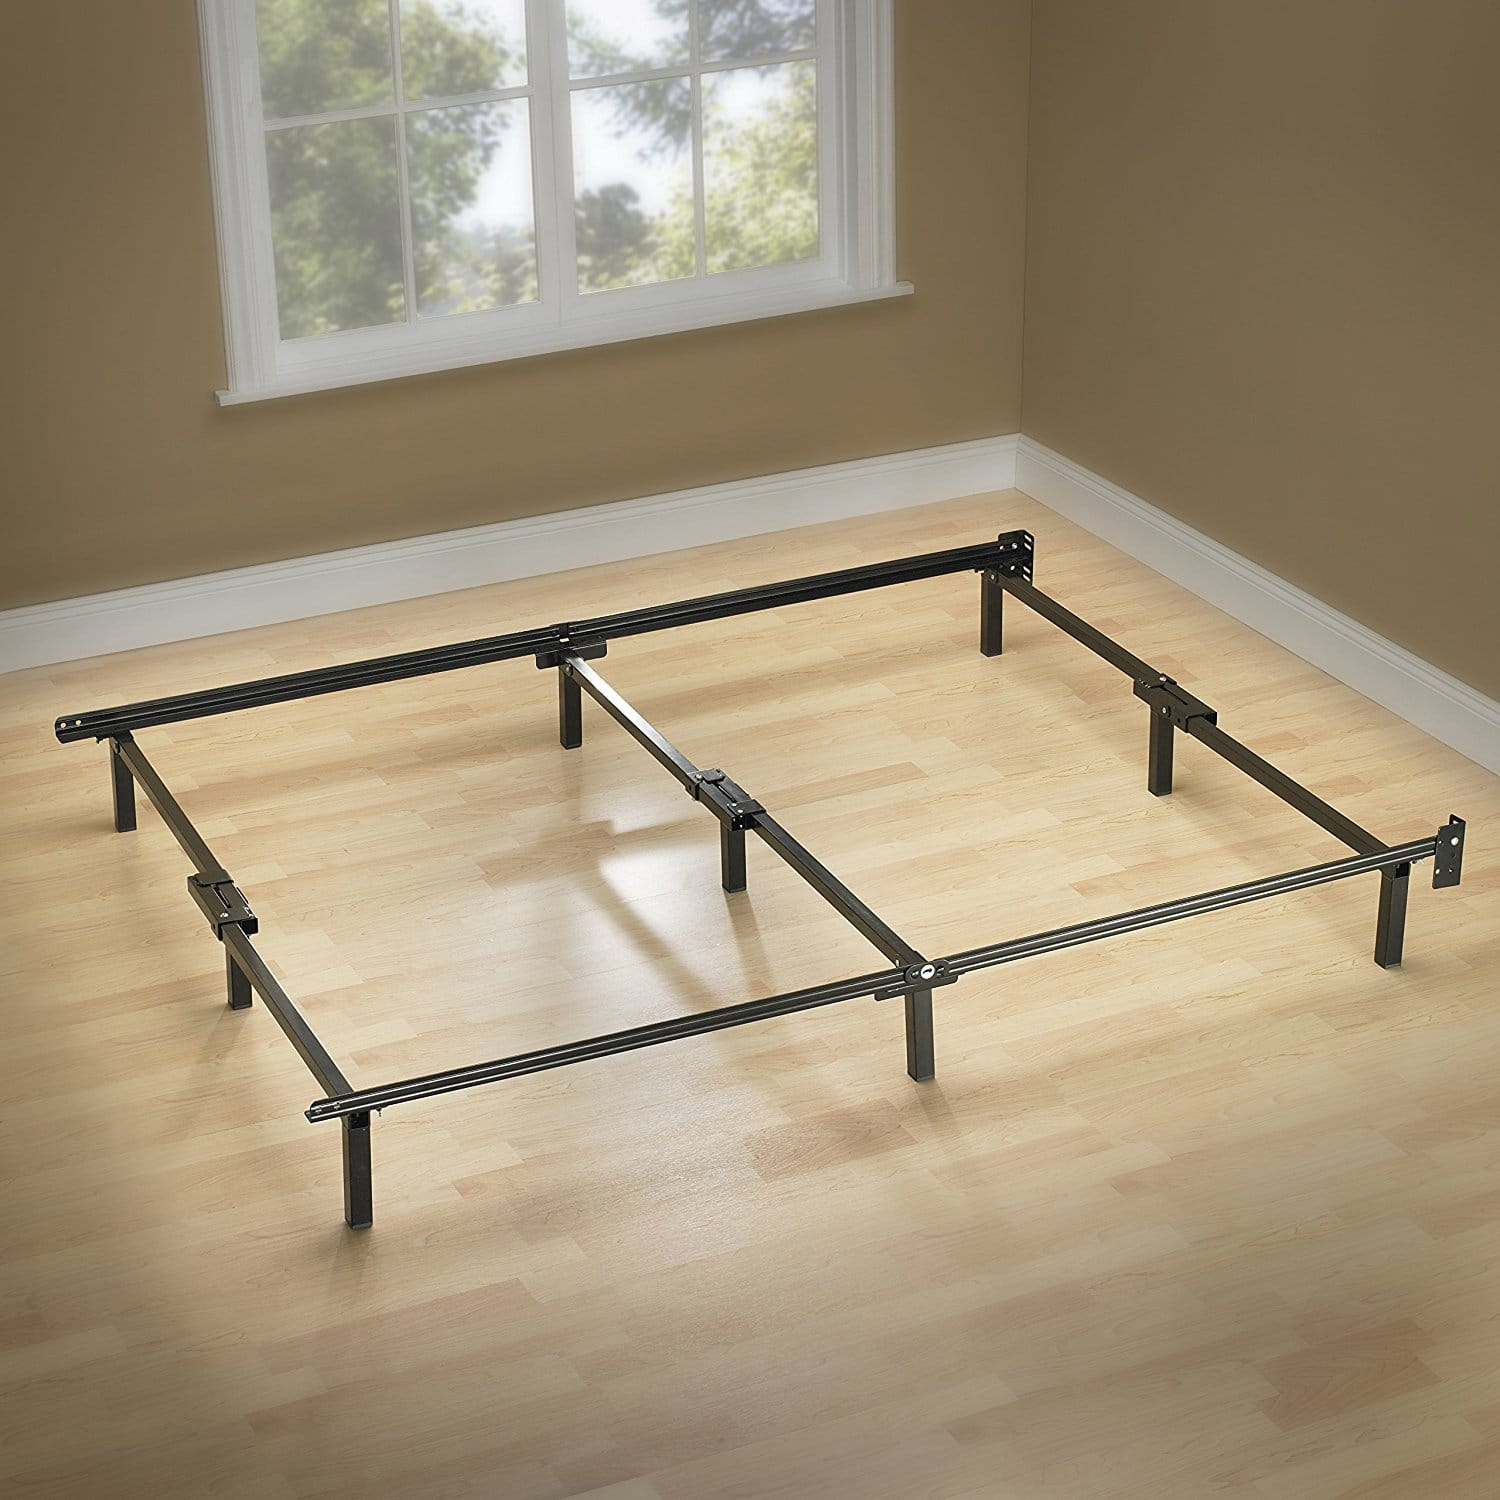 Zinus Compack 9-Leg Support Bed Frame (King) $20.46 + Free S&H w/ Prime or orders $25+